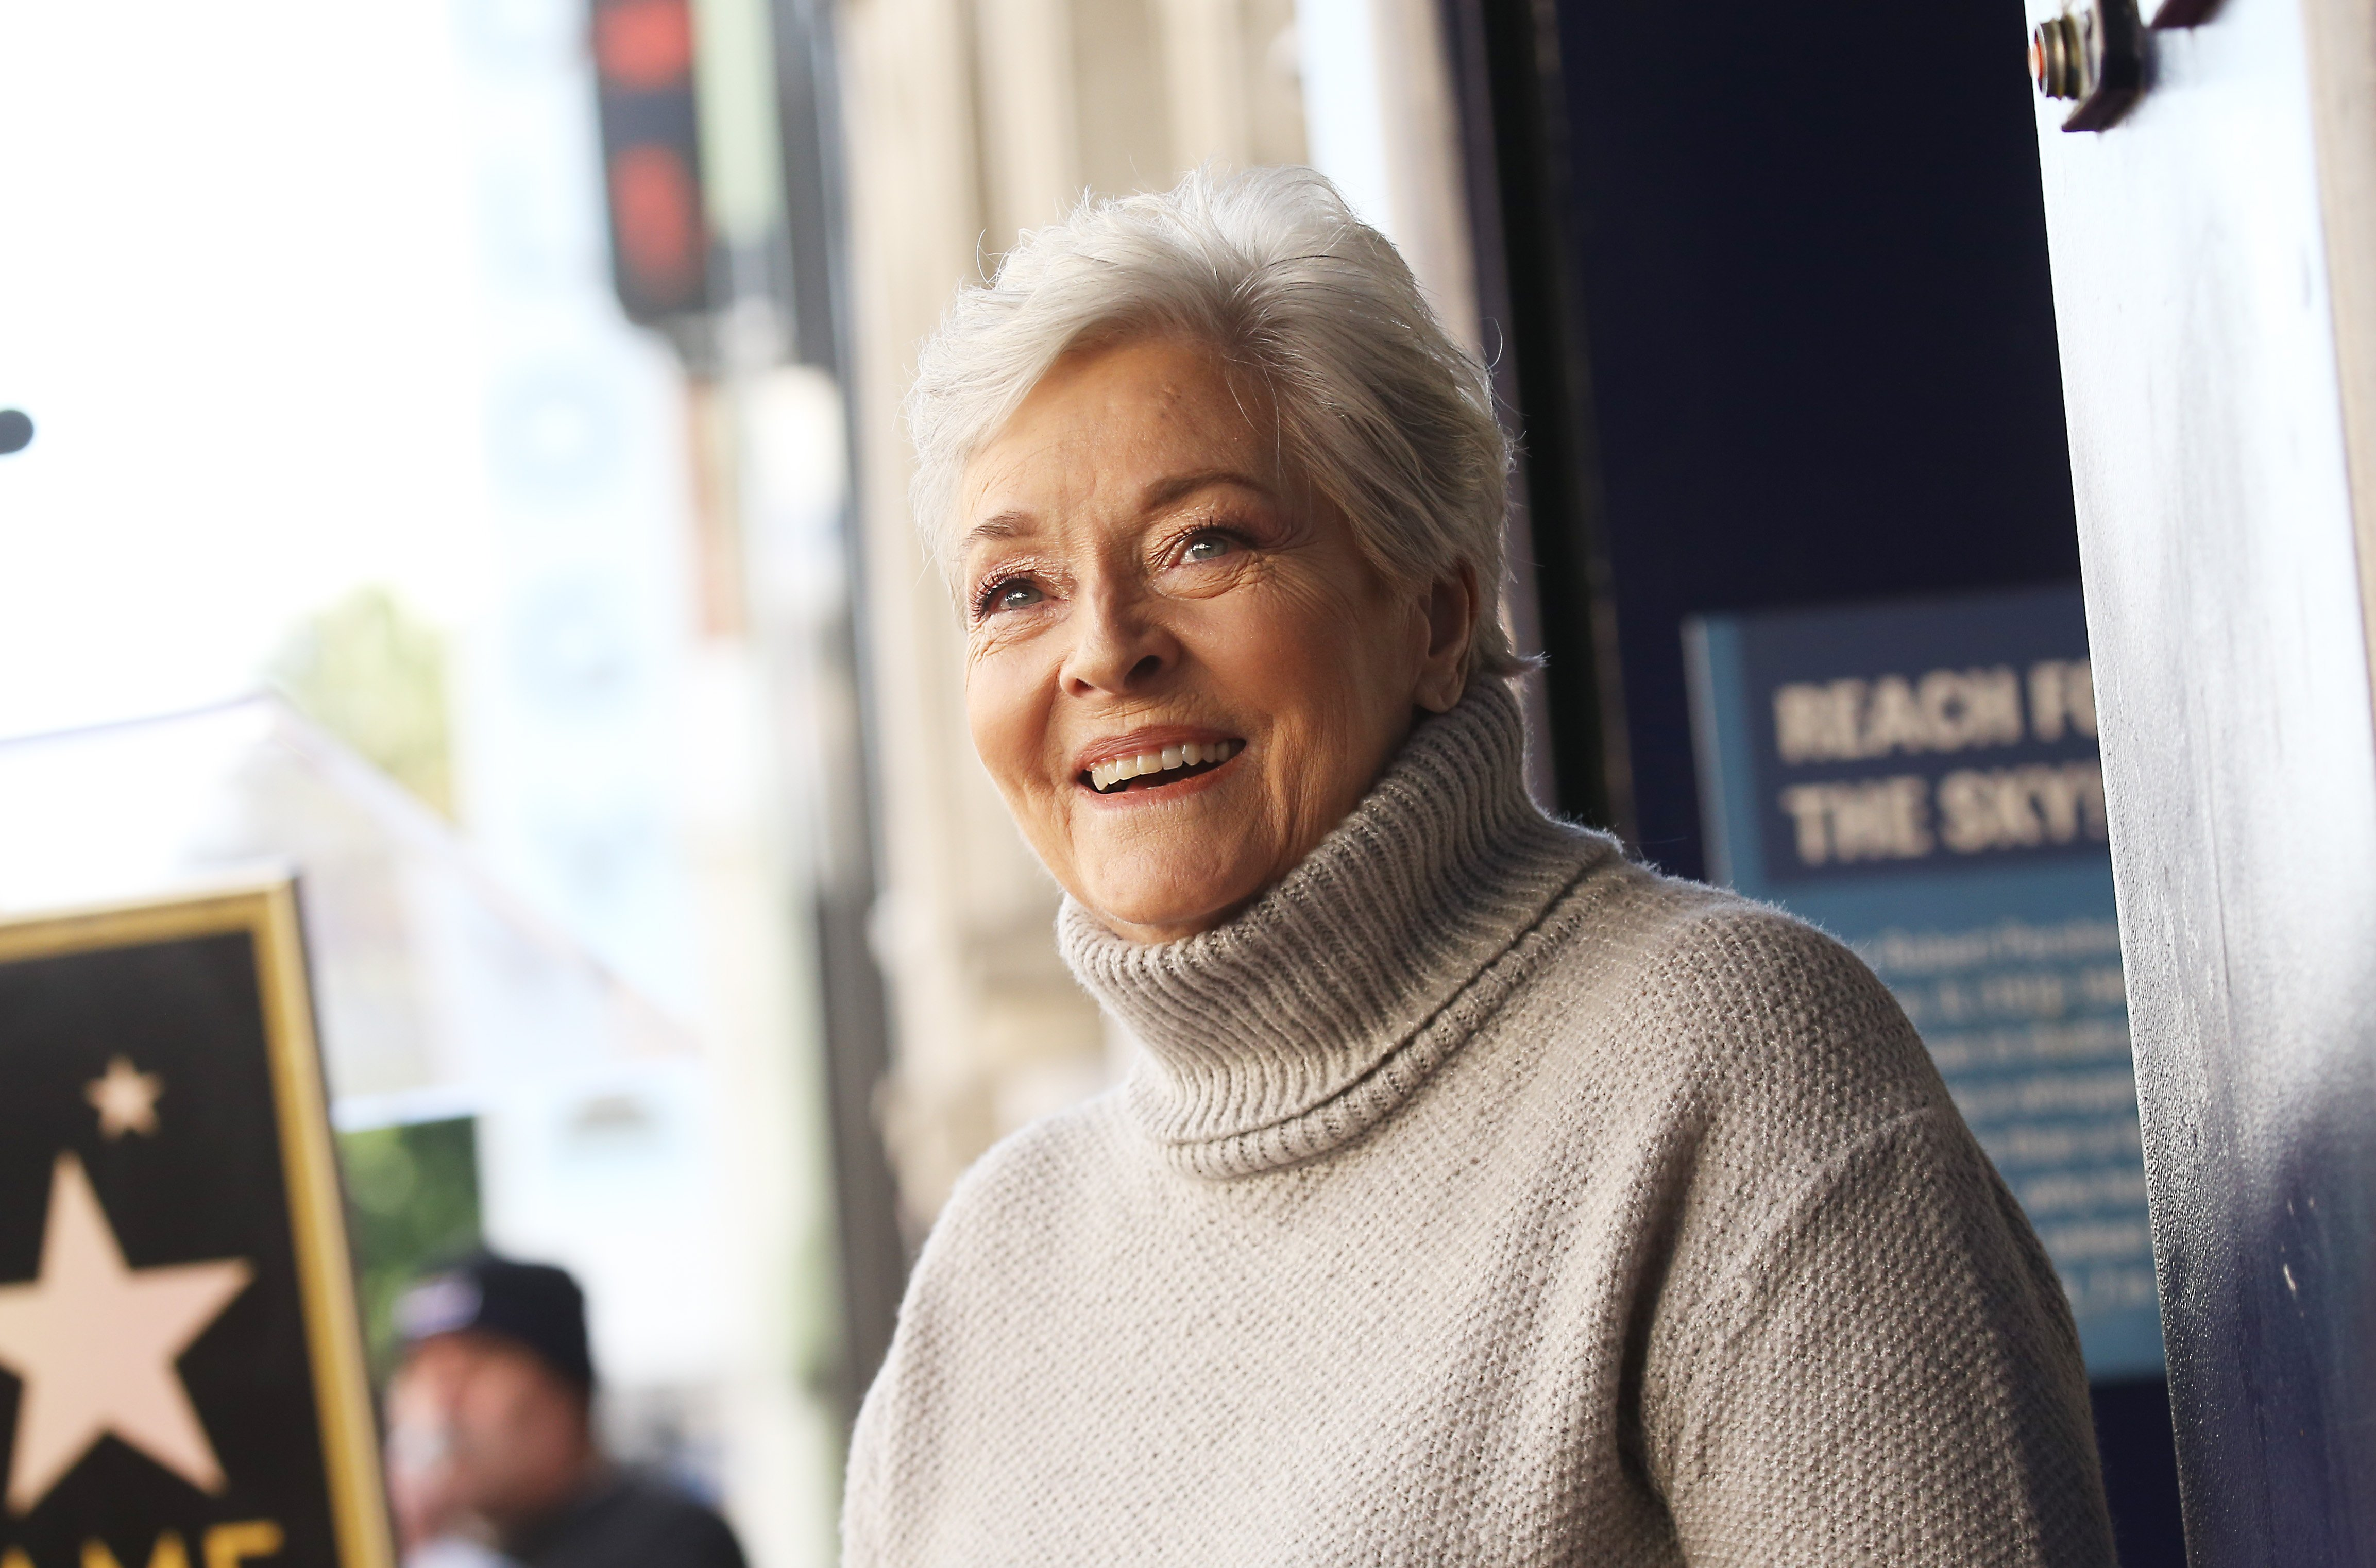 Lee Meriwether attends the ceremony honoring Burt Ward with A Star on the Hollywood Walk of Fame held on January 09, 2020 | Photo: GettyImages